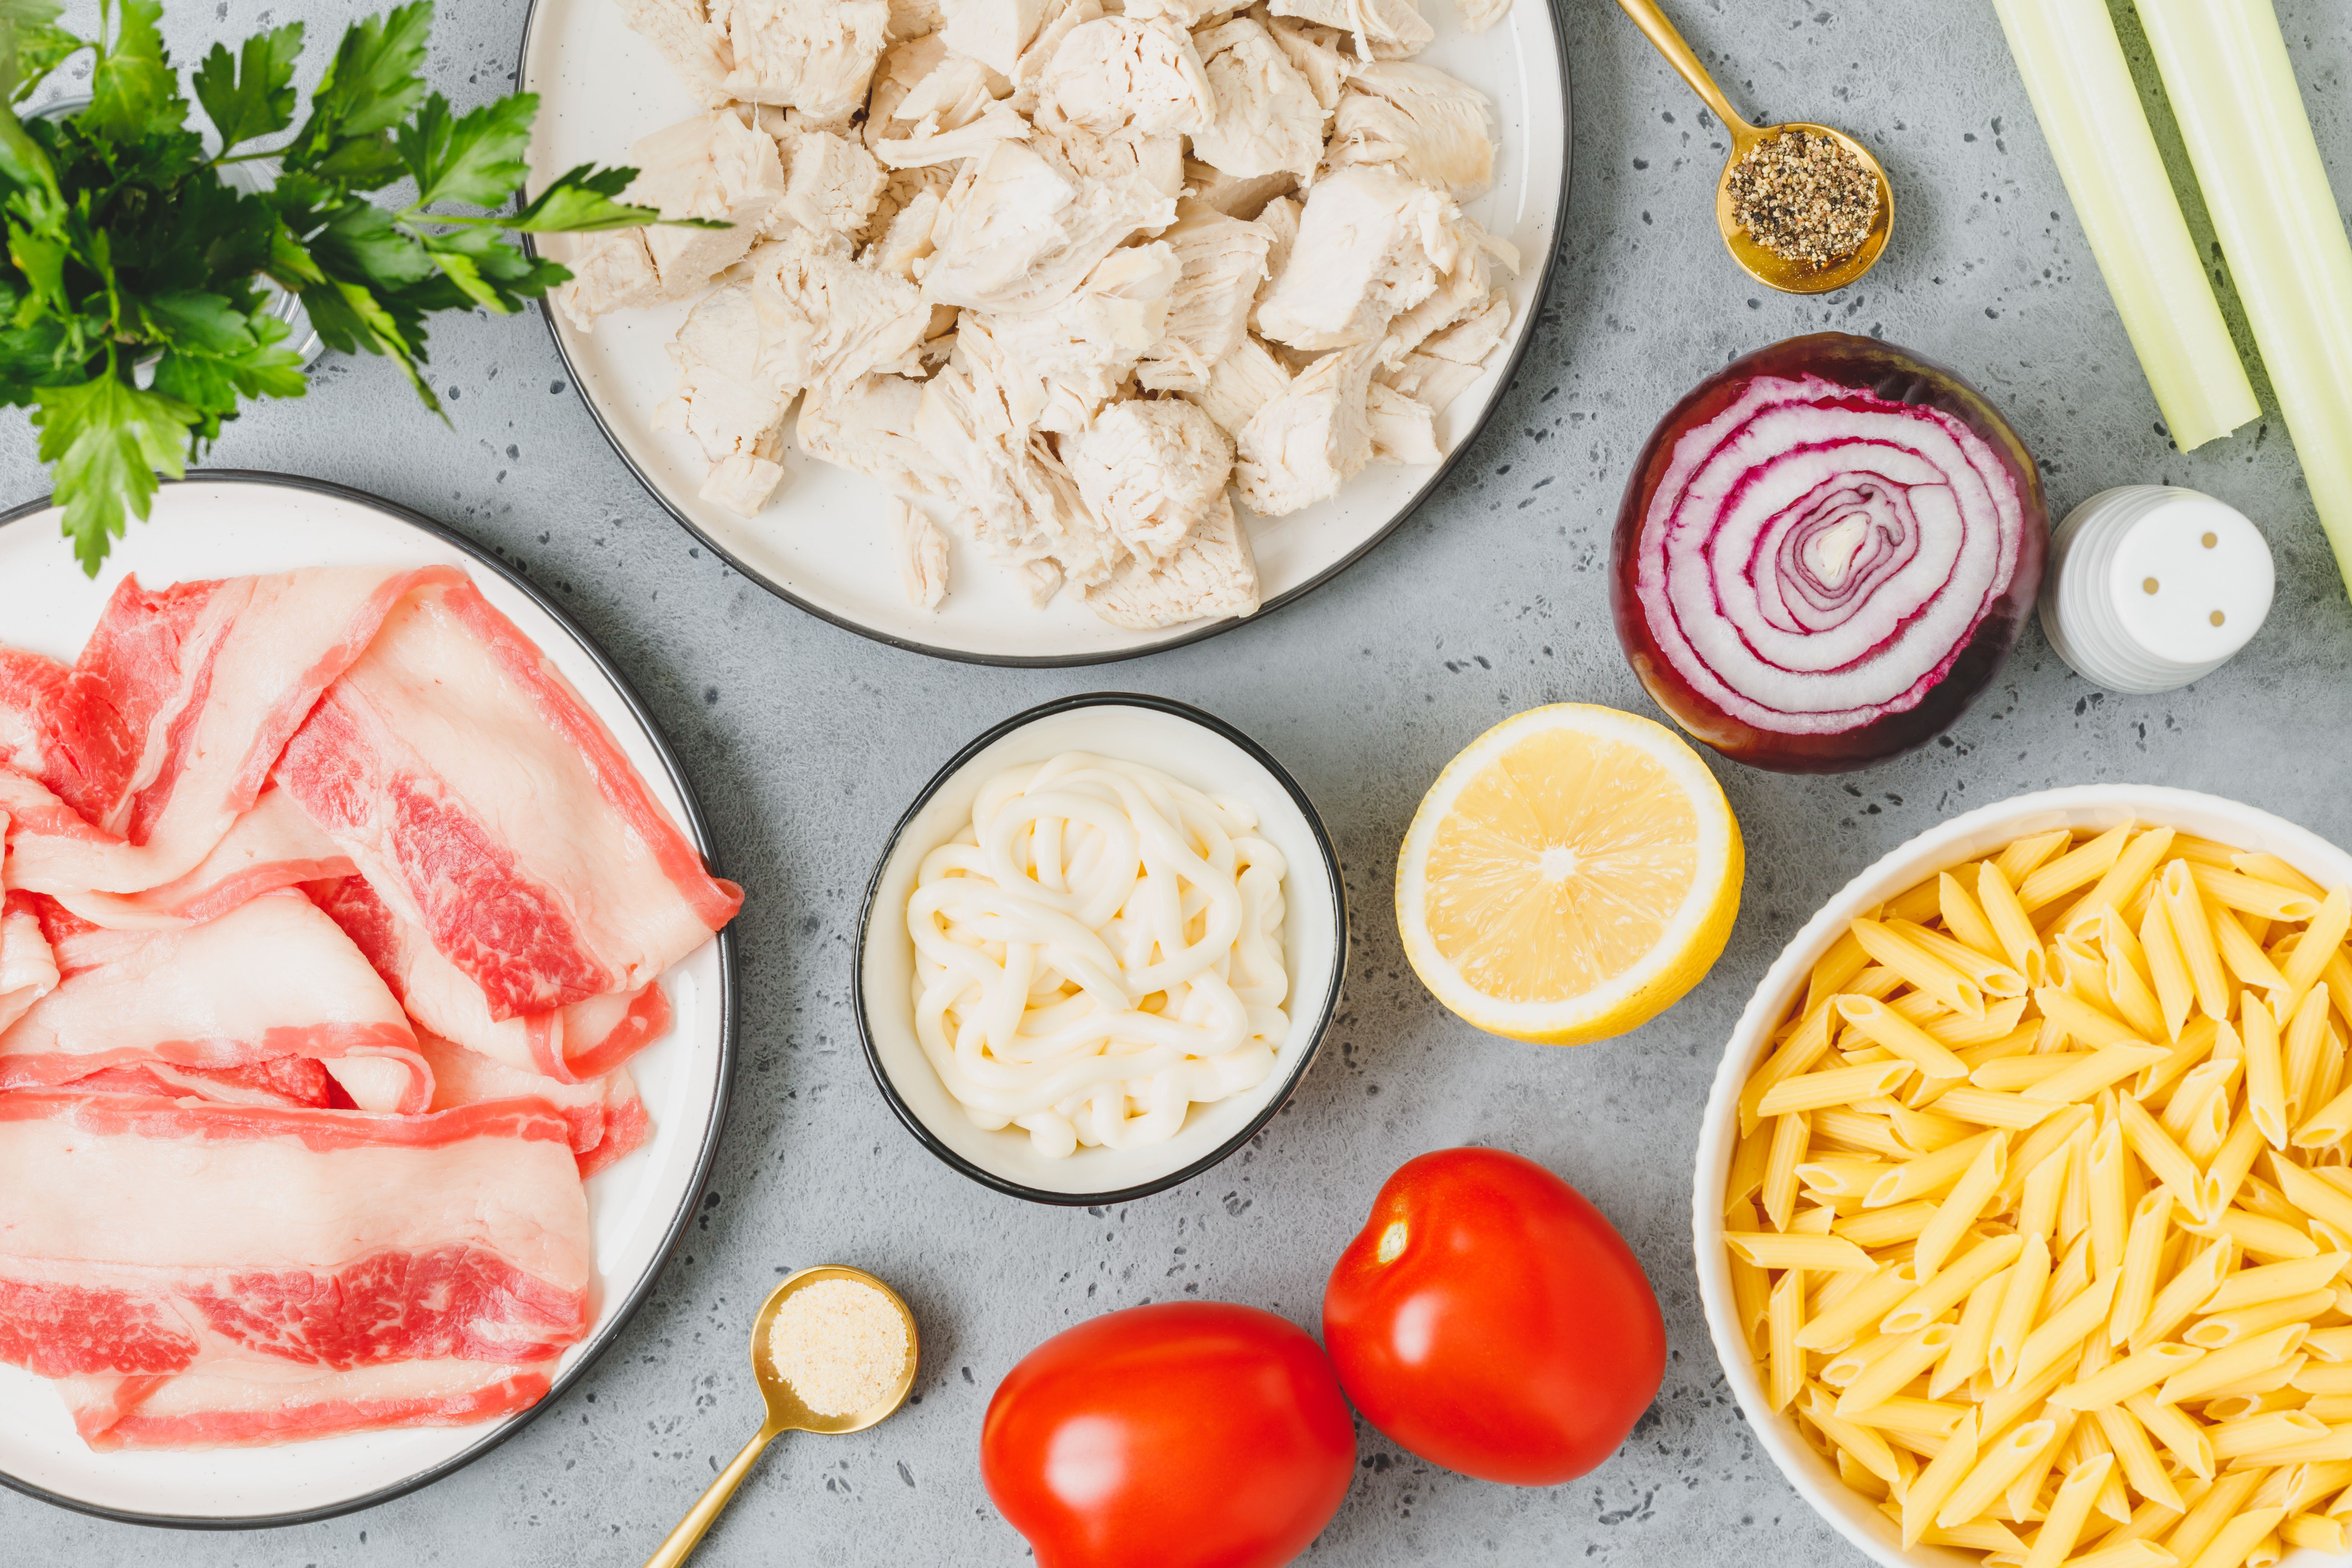 Ingredients for pasta salad with chicken and bacon